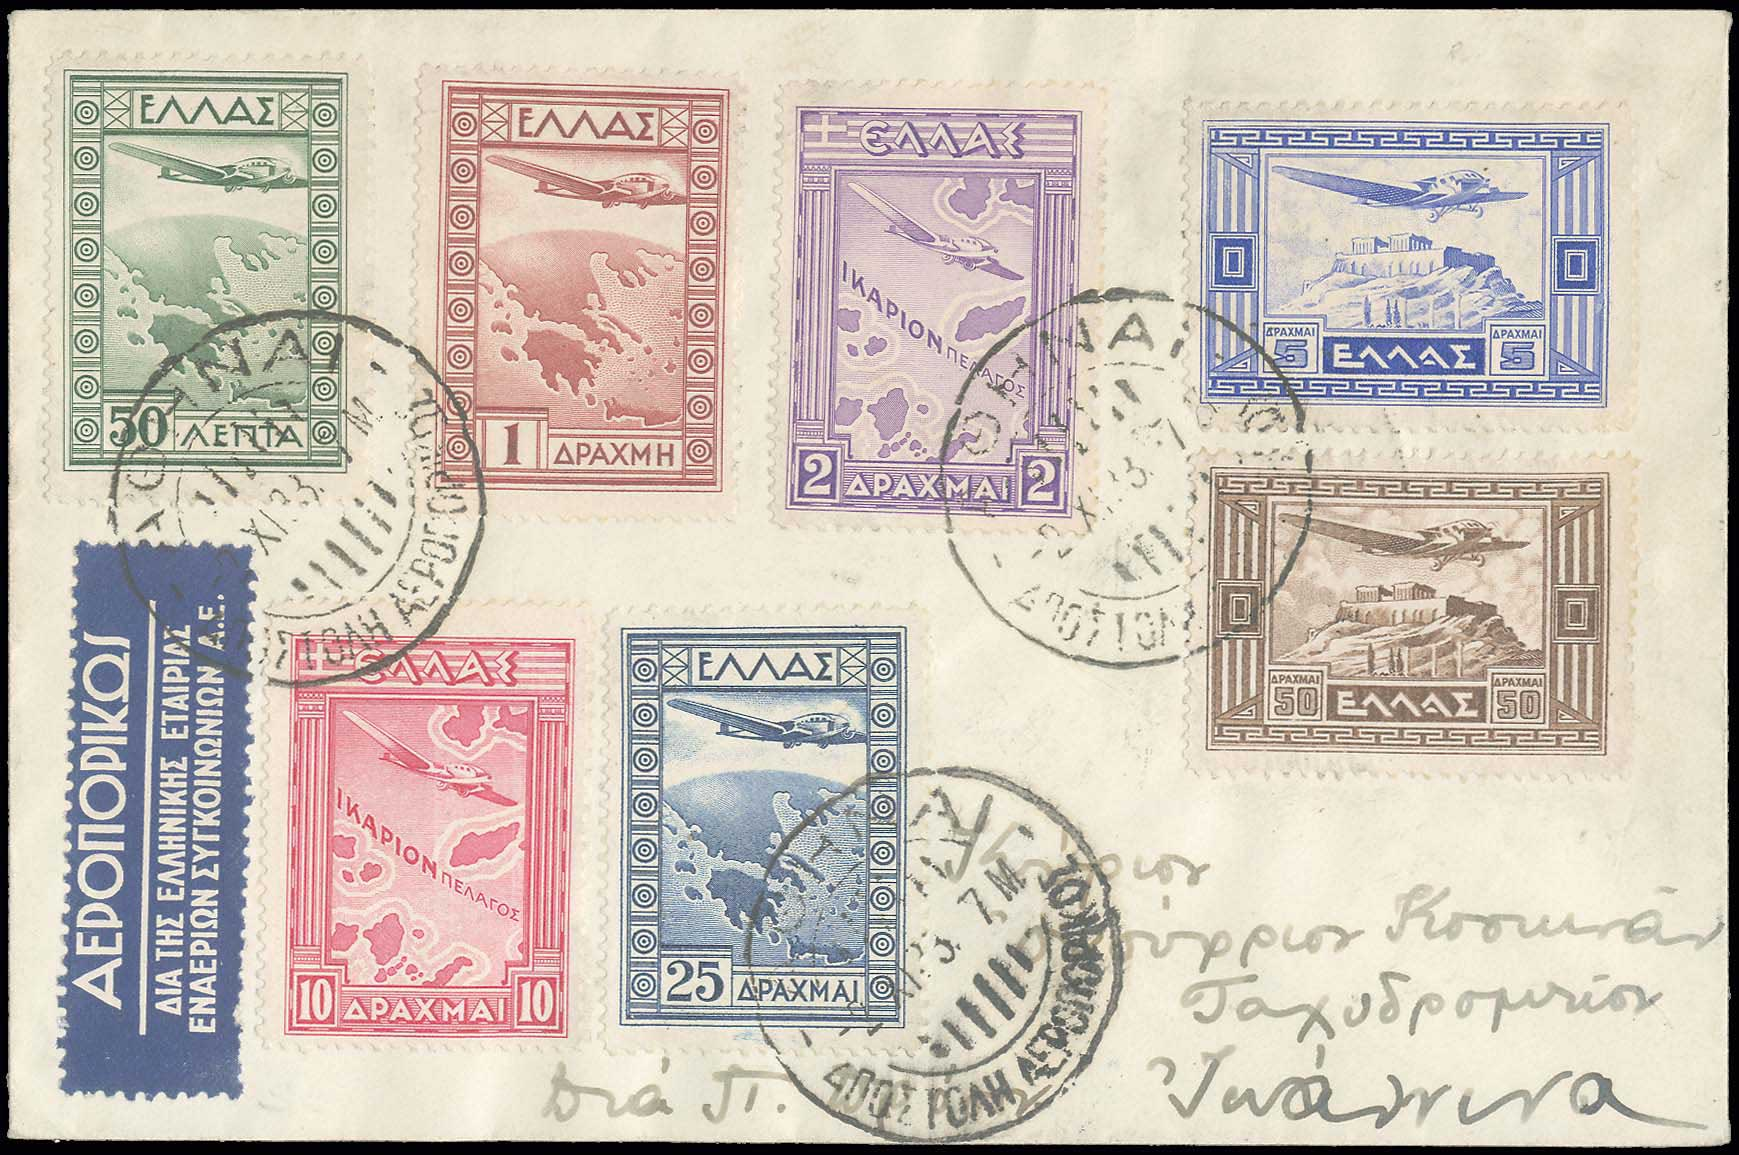 Lot 622 - First day cover First day cover -  A. Karamitsos Public & Live Internet Auction 672